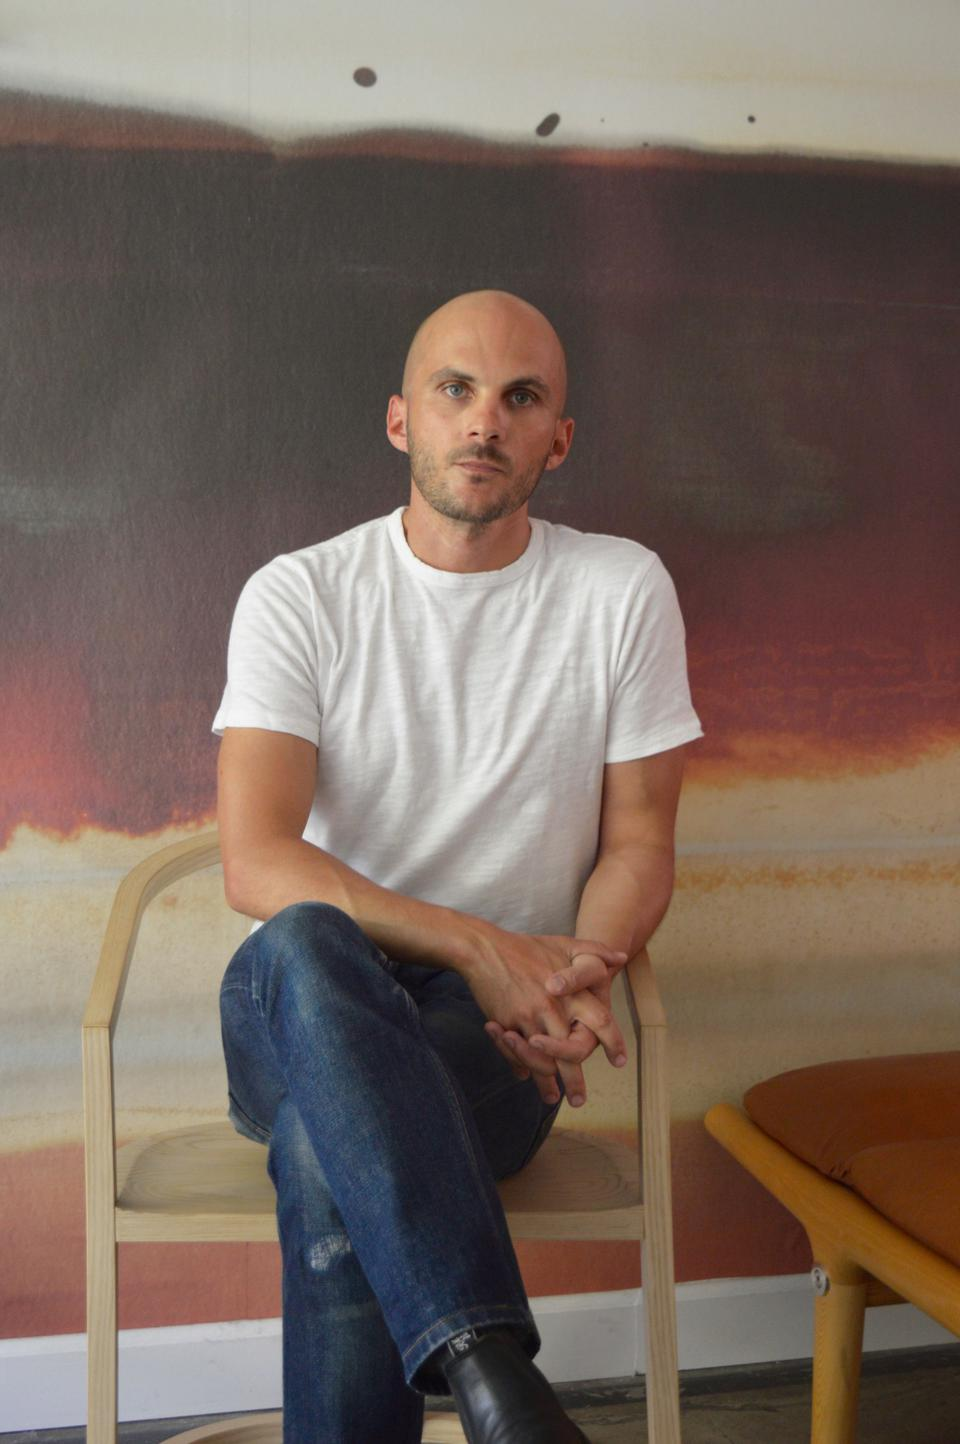 A man with a shaved head, wearing a white t-shirt and jeans, sits in a chair with his legs crossed.